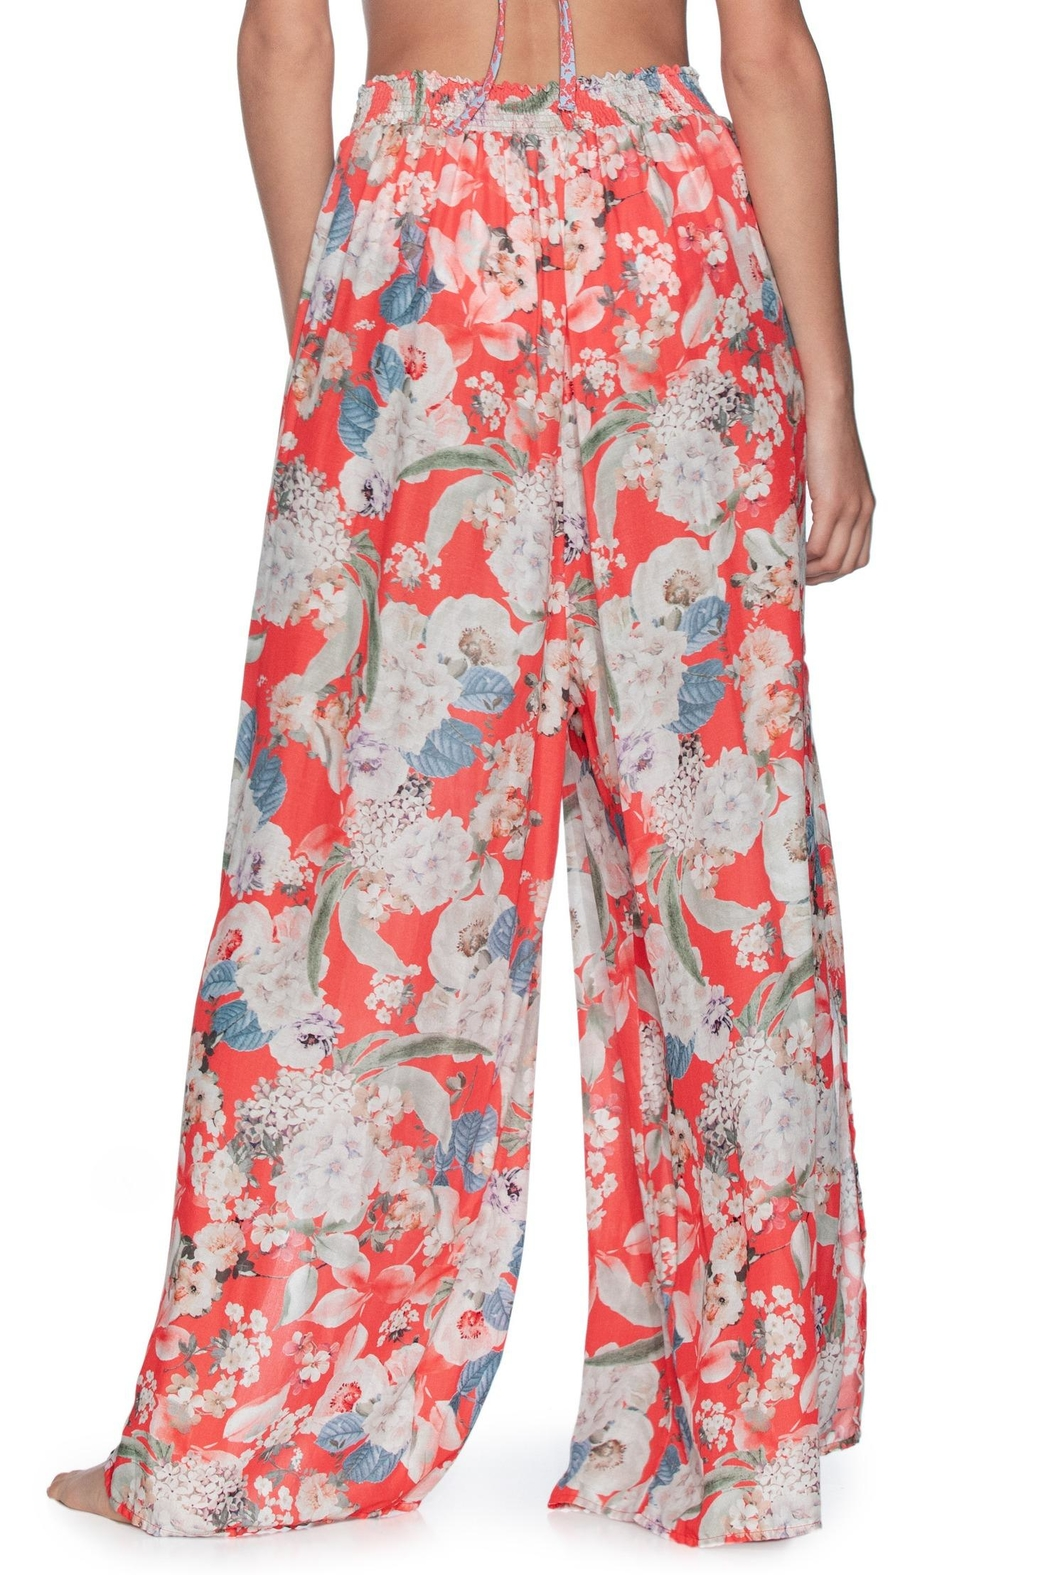 Maaji Swimwear Maaji Beach Pants - Front Full Image